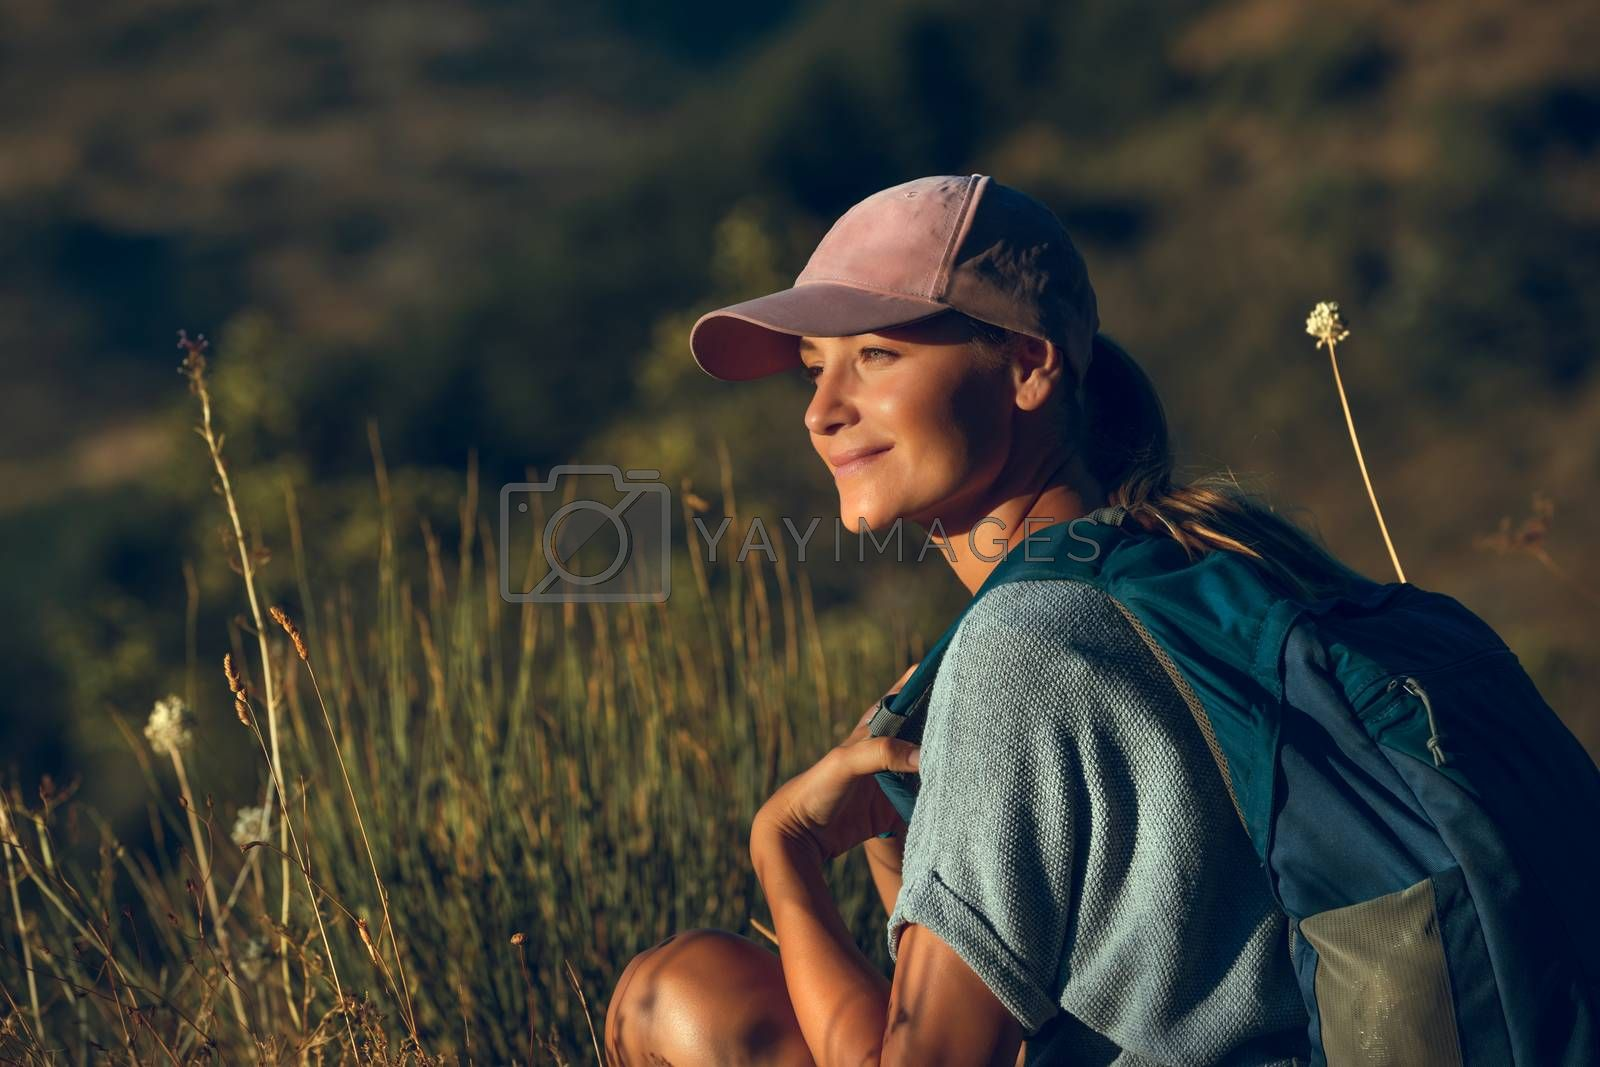 Portrait of a Beautiful Happy Woman Enjoying Mild Sunset Light in the Mountains. Beauty of Wild Nature. Peaceful Quiet Weekend Outdoors.